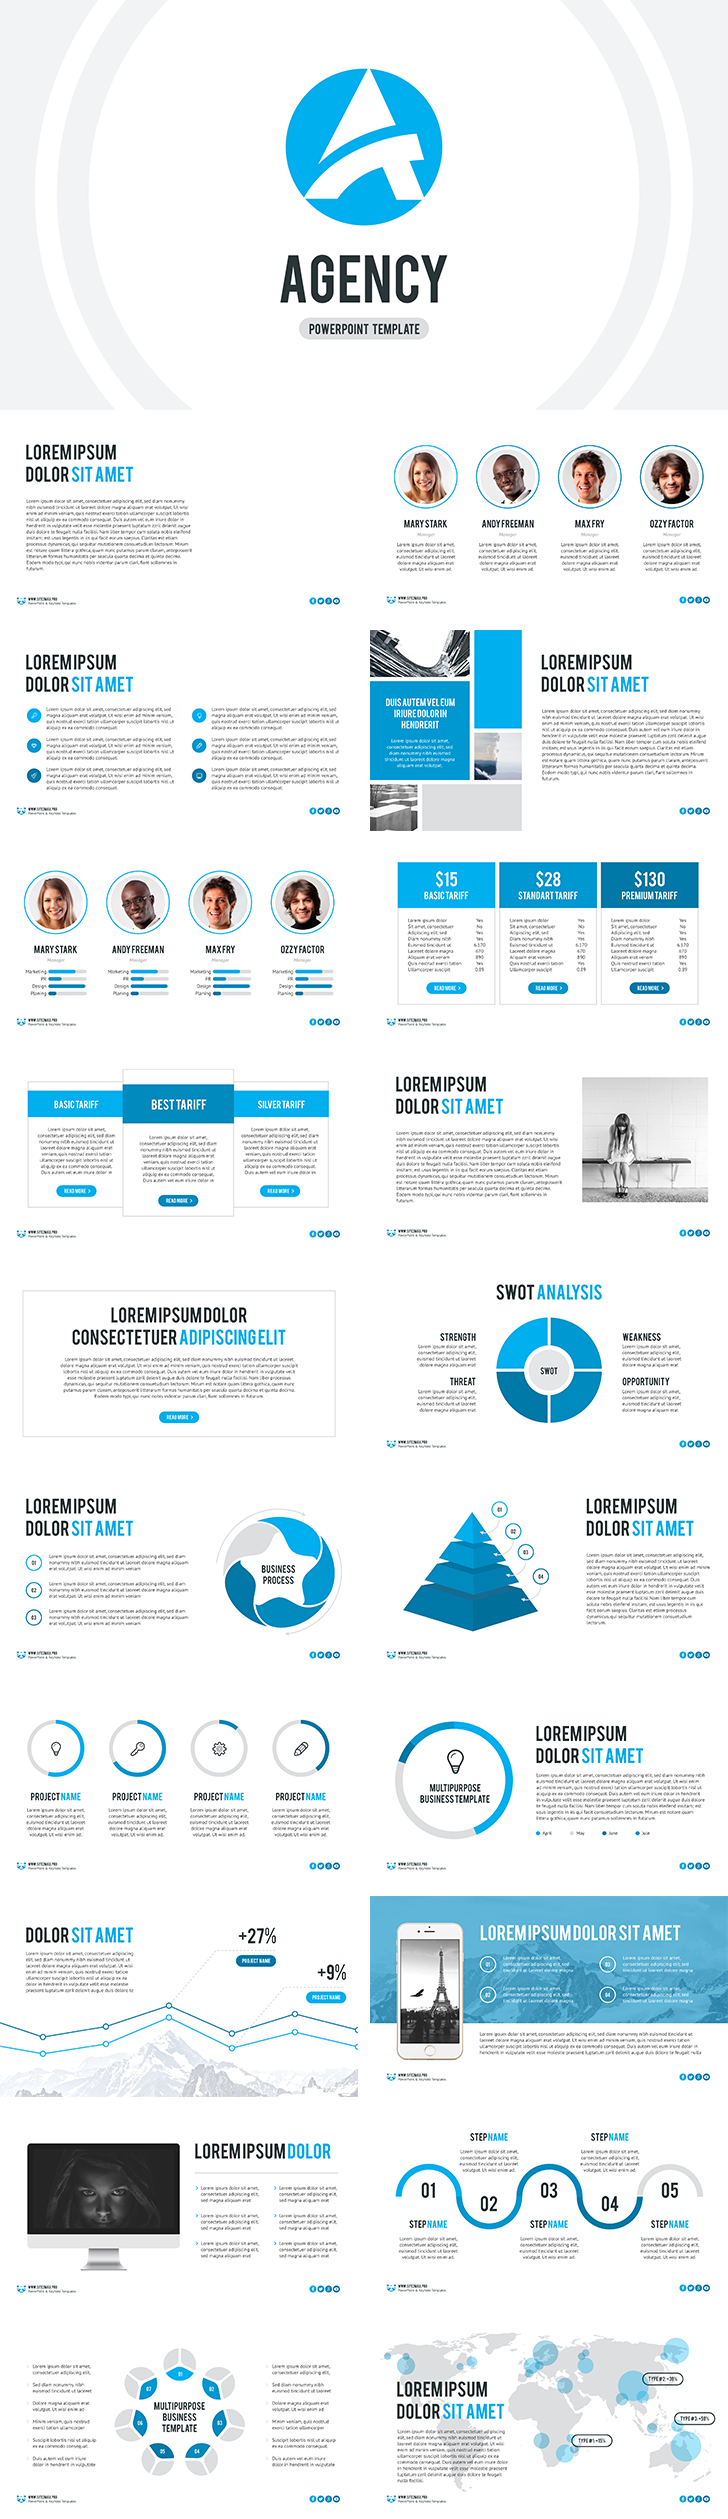 Agency free powerpoint template download free are you tired of looking for unique presentation for your project no longer need to look for just download agency free powerpoint template for free and toneelgroepblik Image collections